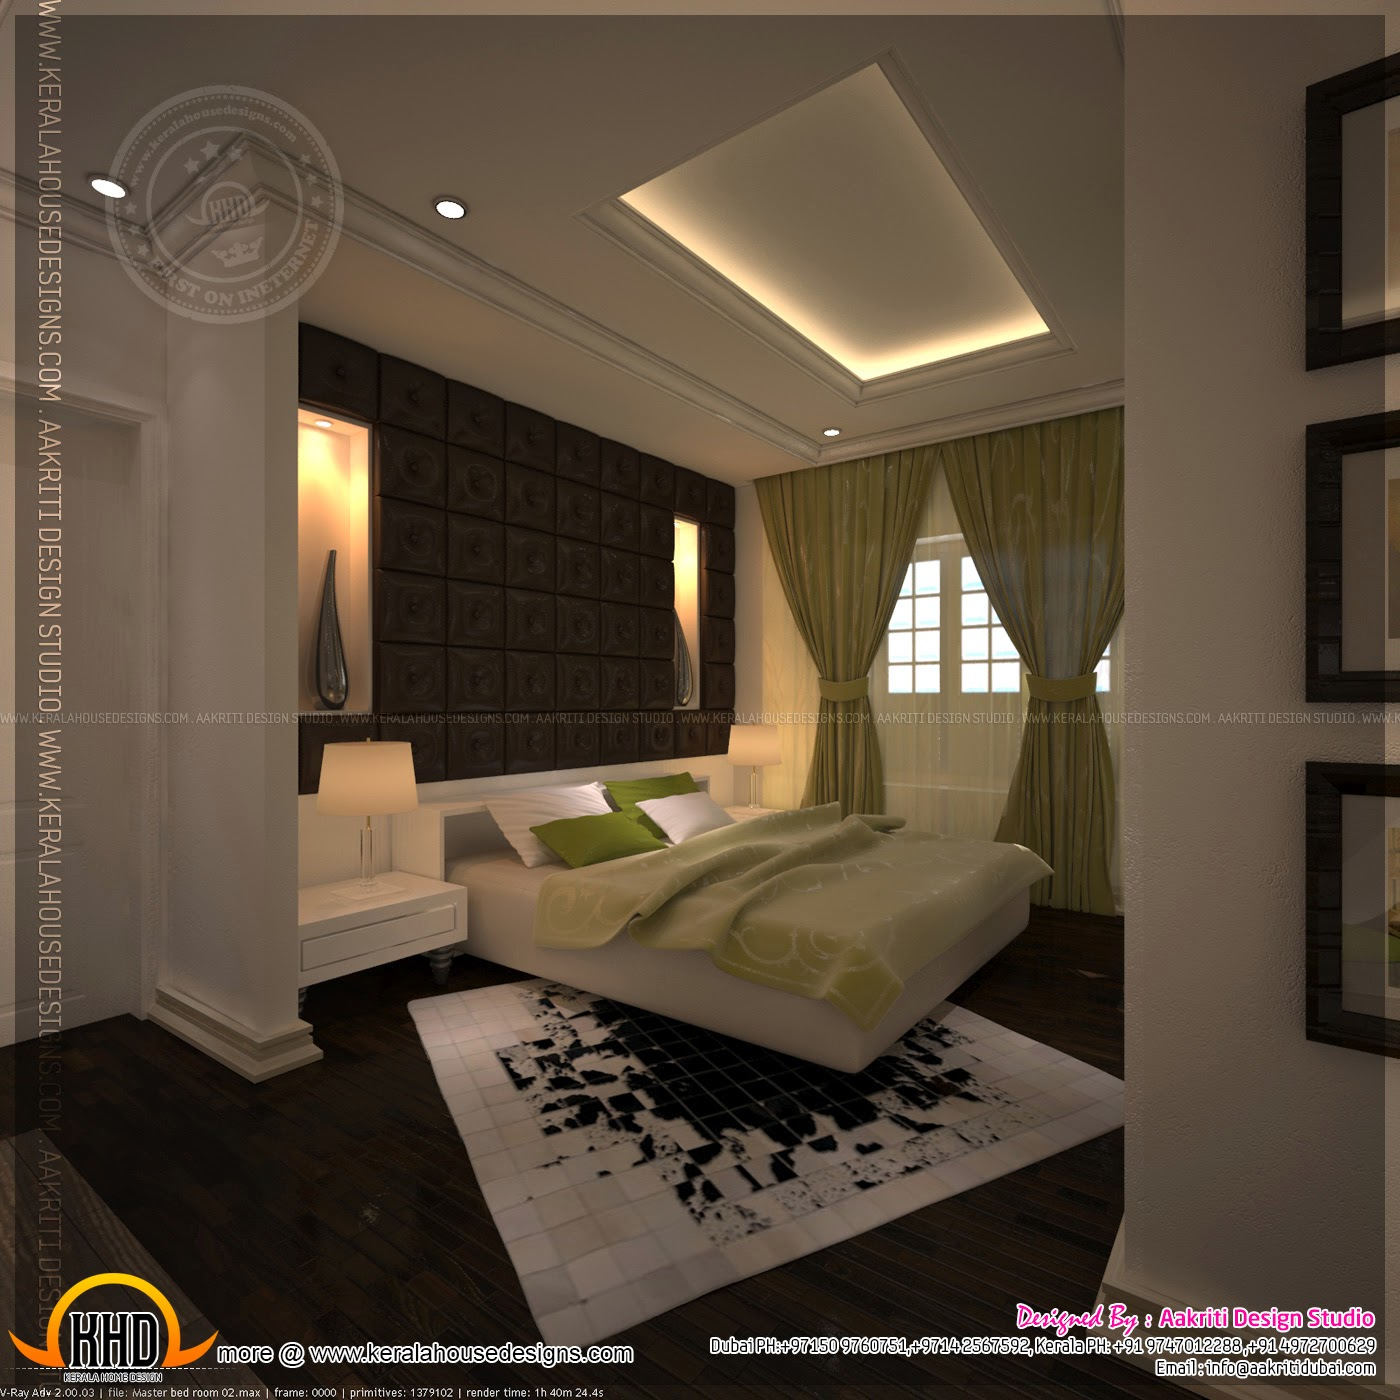 Master bedroom and bathroom interior design kerala home for Interior designs for bedrooms indian style